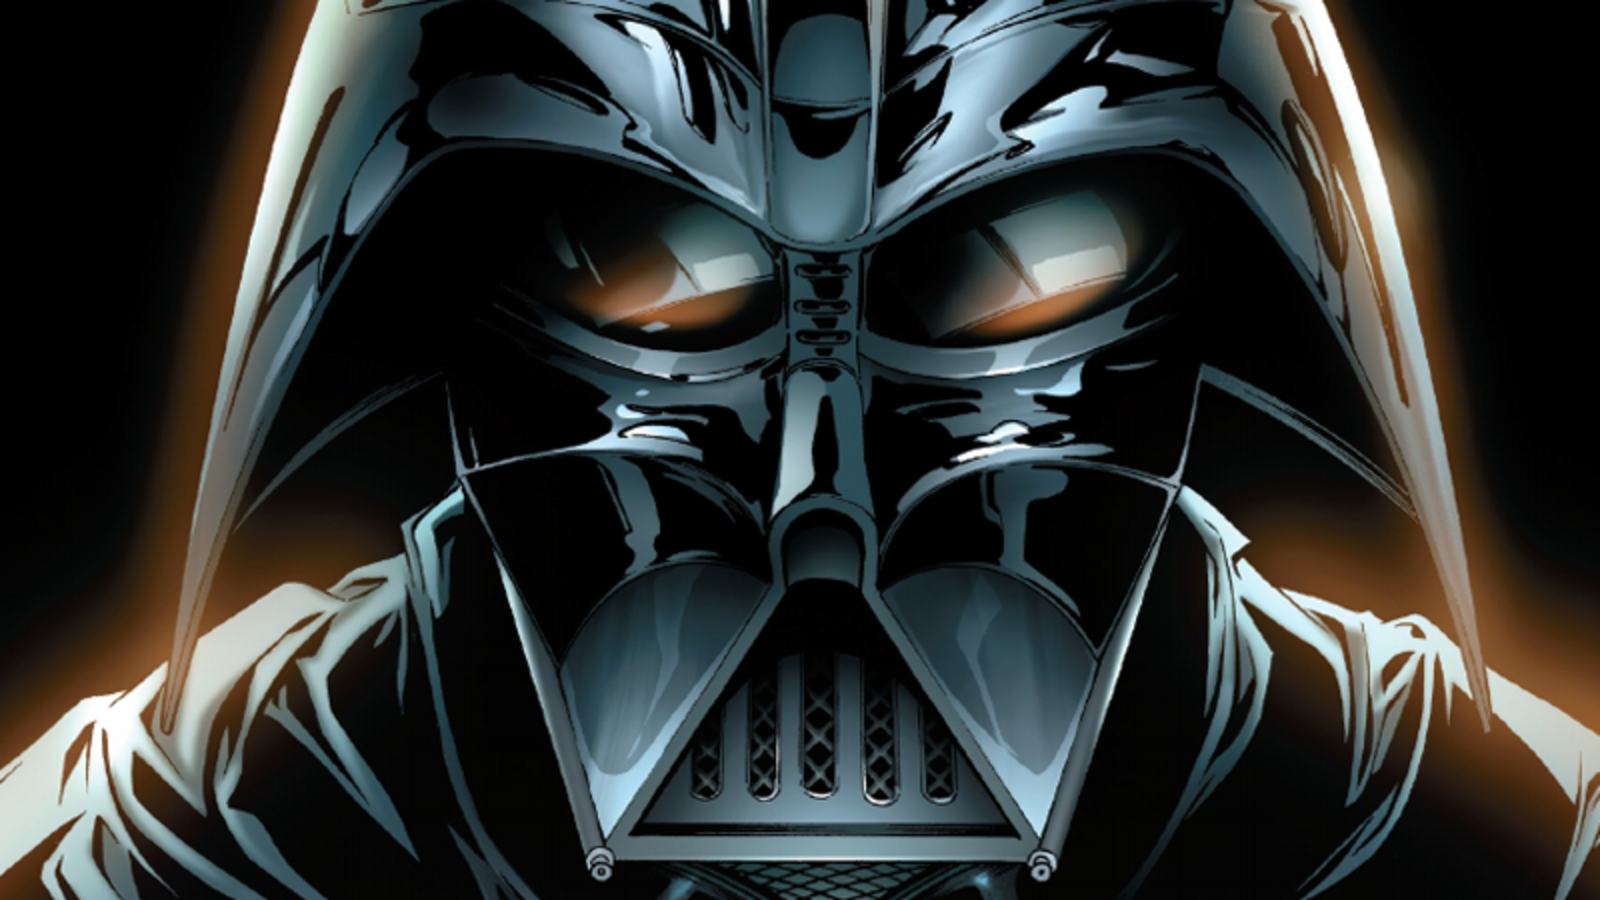 The Road to Darth Vader's Rebellion Begins With the Galaxy's Most Savage Gift The Road to Darth Vader's Rebellion Begins With the Galaxy's Most Savage Gift